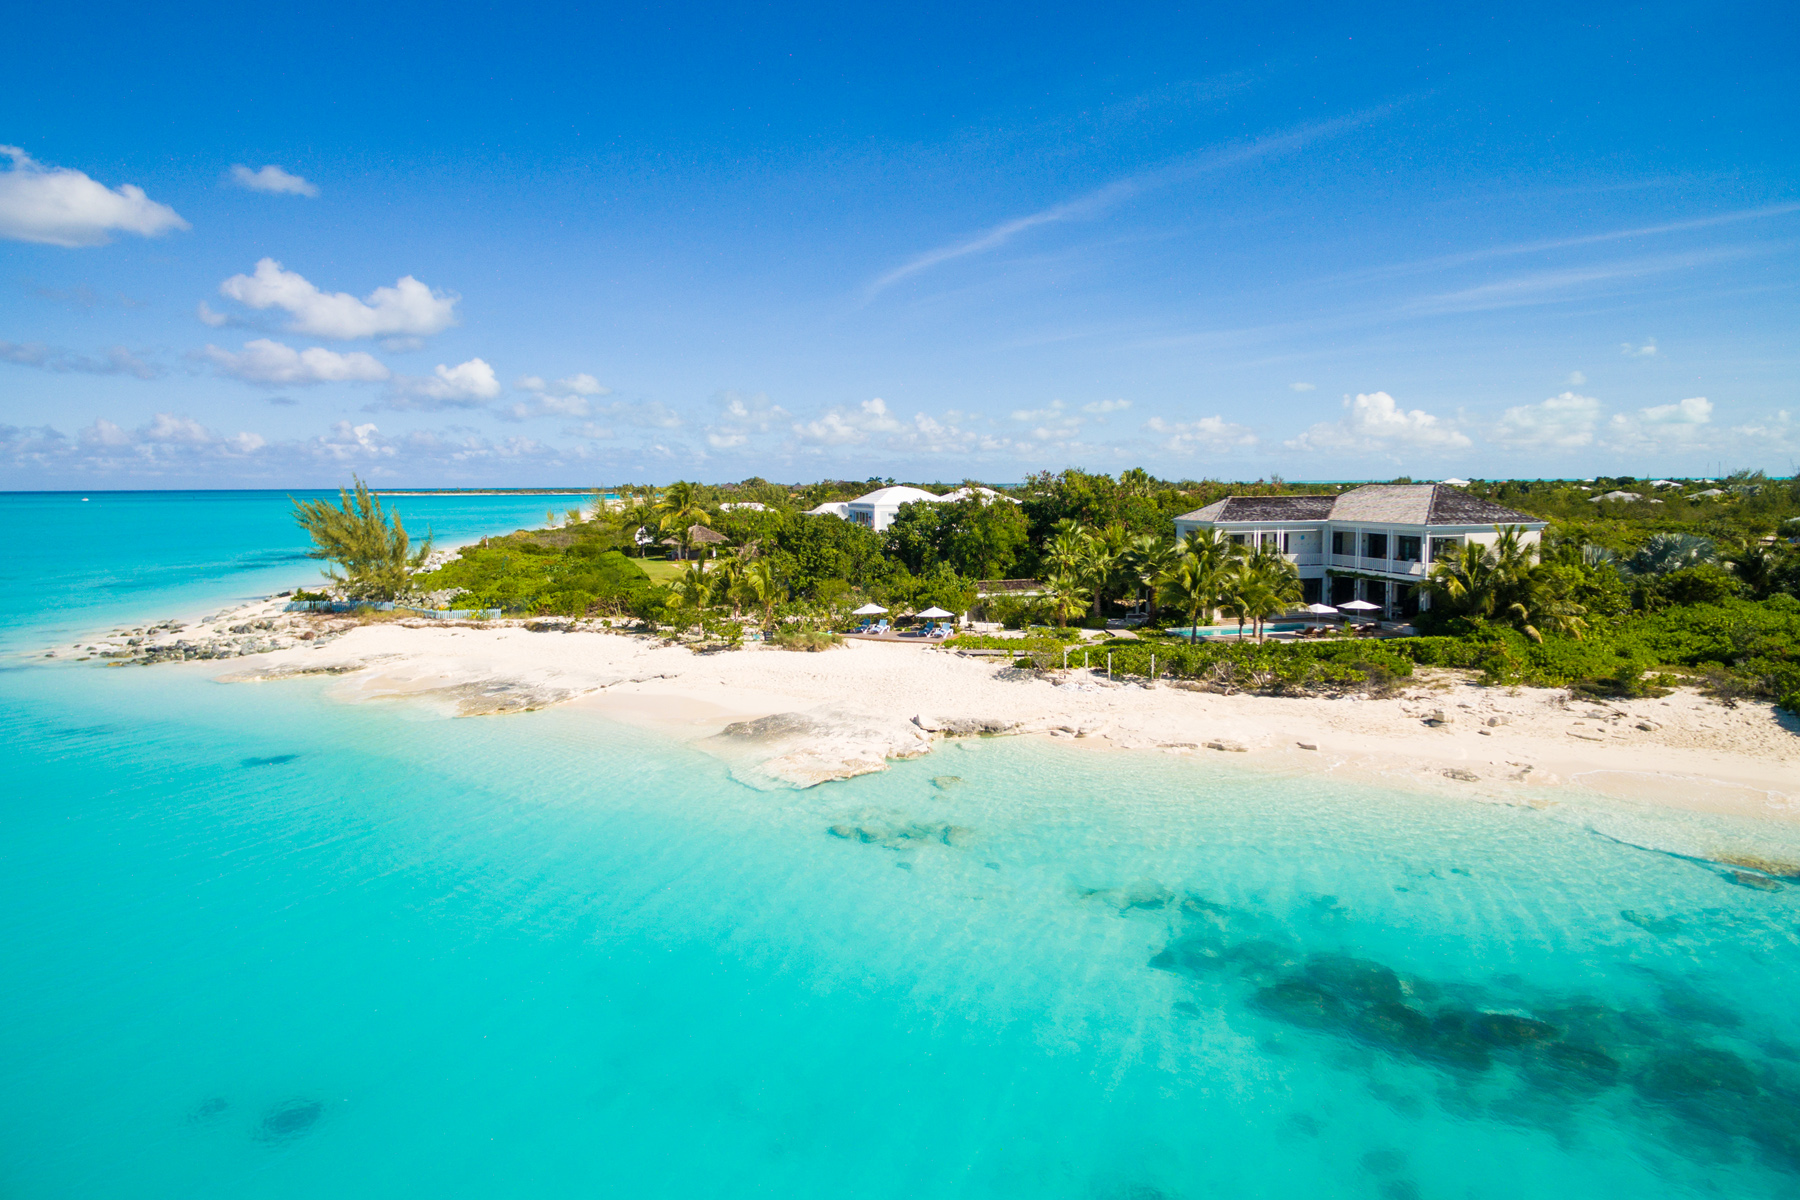 Maison unifamiliale pour l Vente à Saving Grace - Luxurious Beachfront Villa Grace Bay, Providenciales, TCI BWI Îles Turques Et Caïques